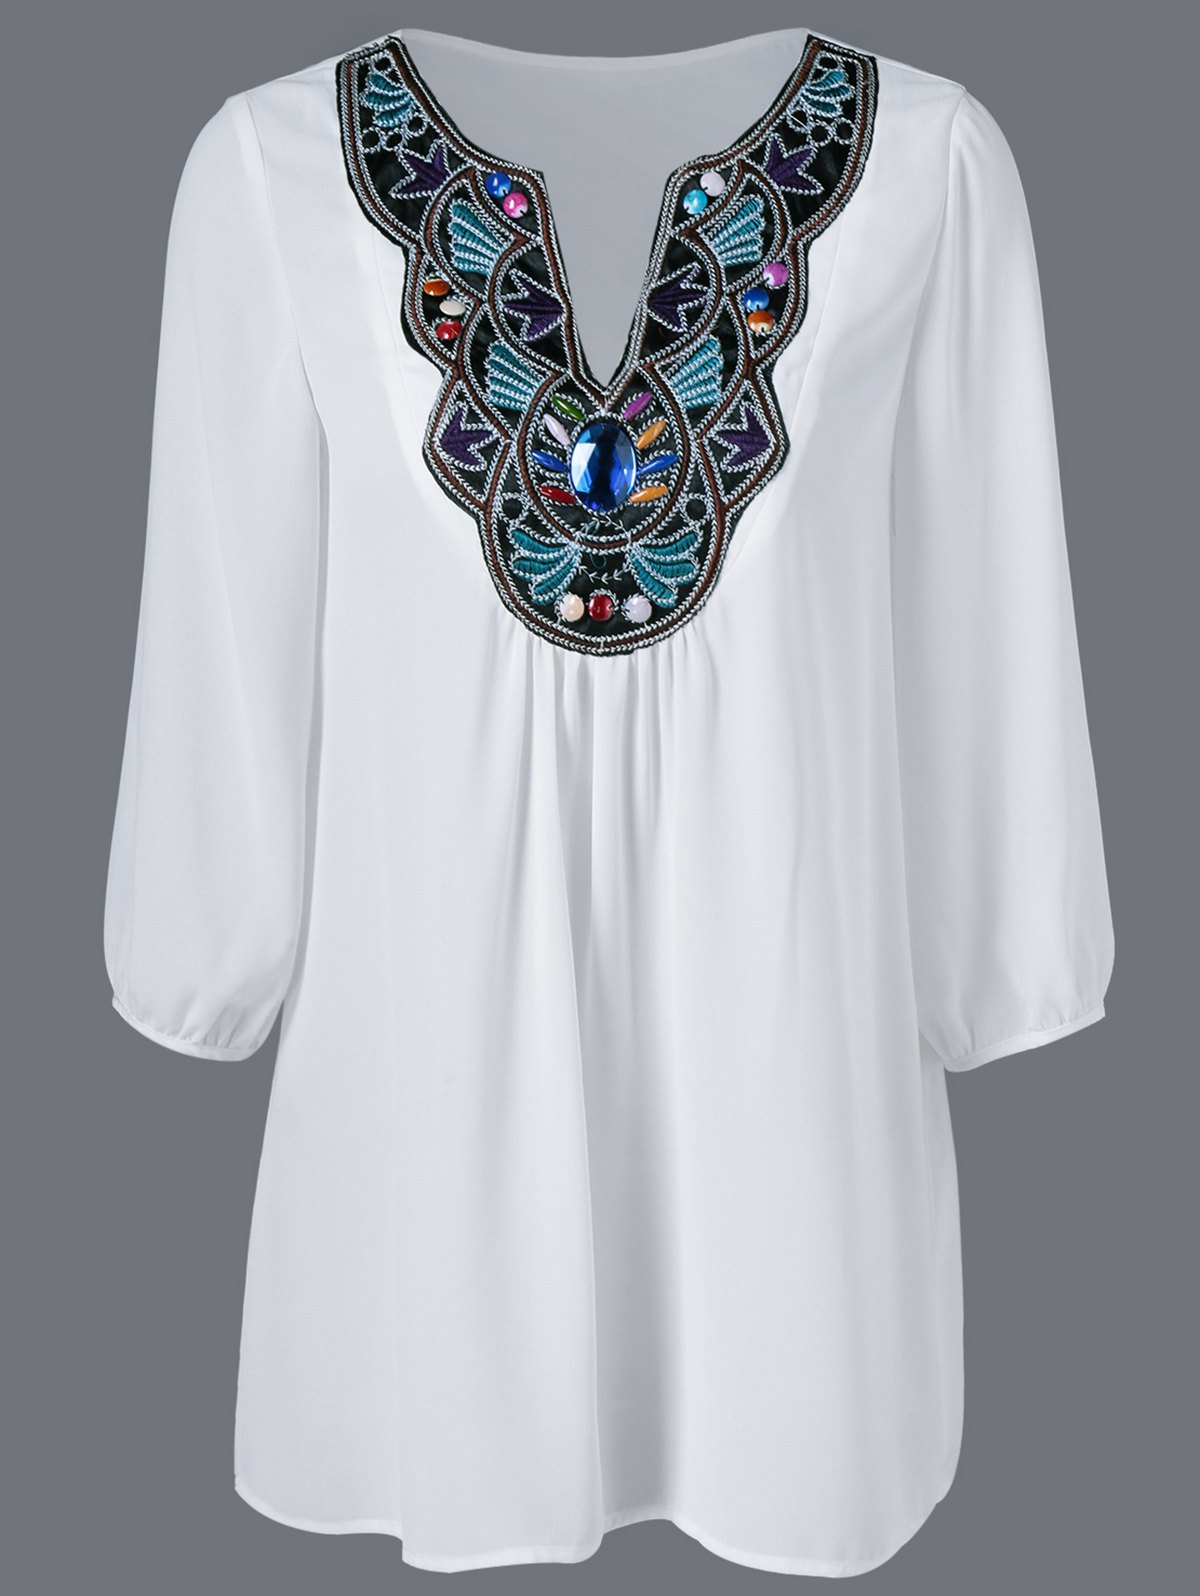 Embroidered Maxican Peasant Chiffon Blouse удилище фидерное mikado ultraviolet heavy feeder 360 до 120гр карбон mx 9